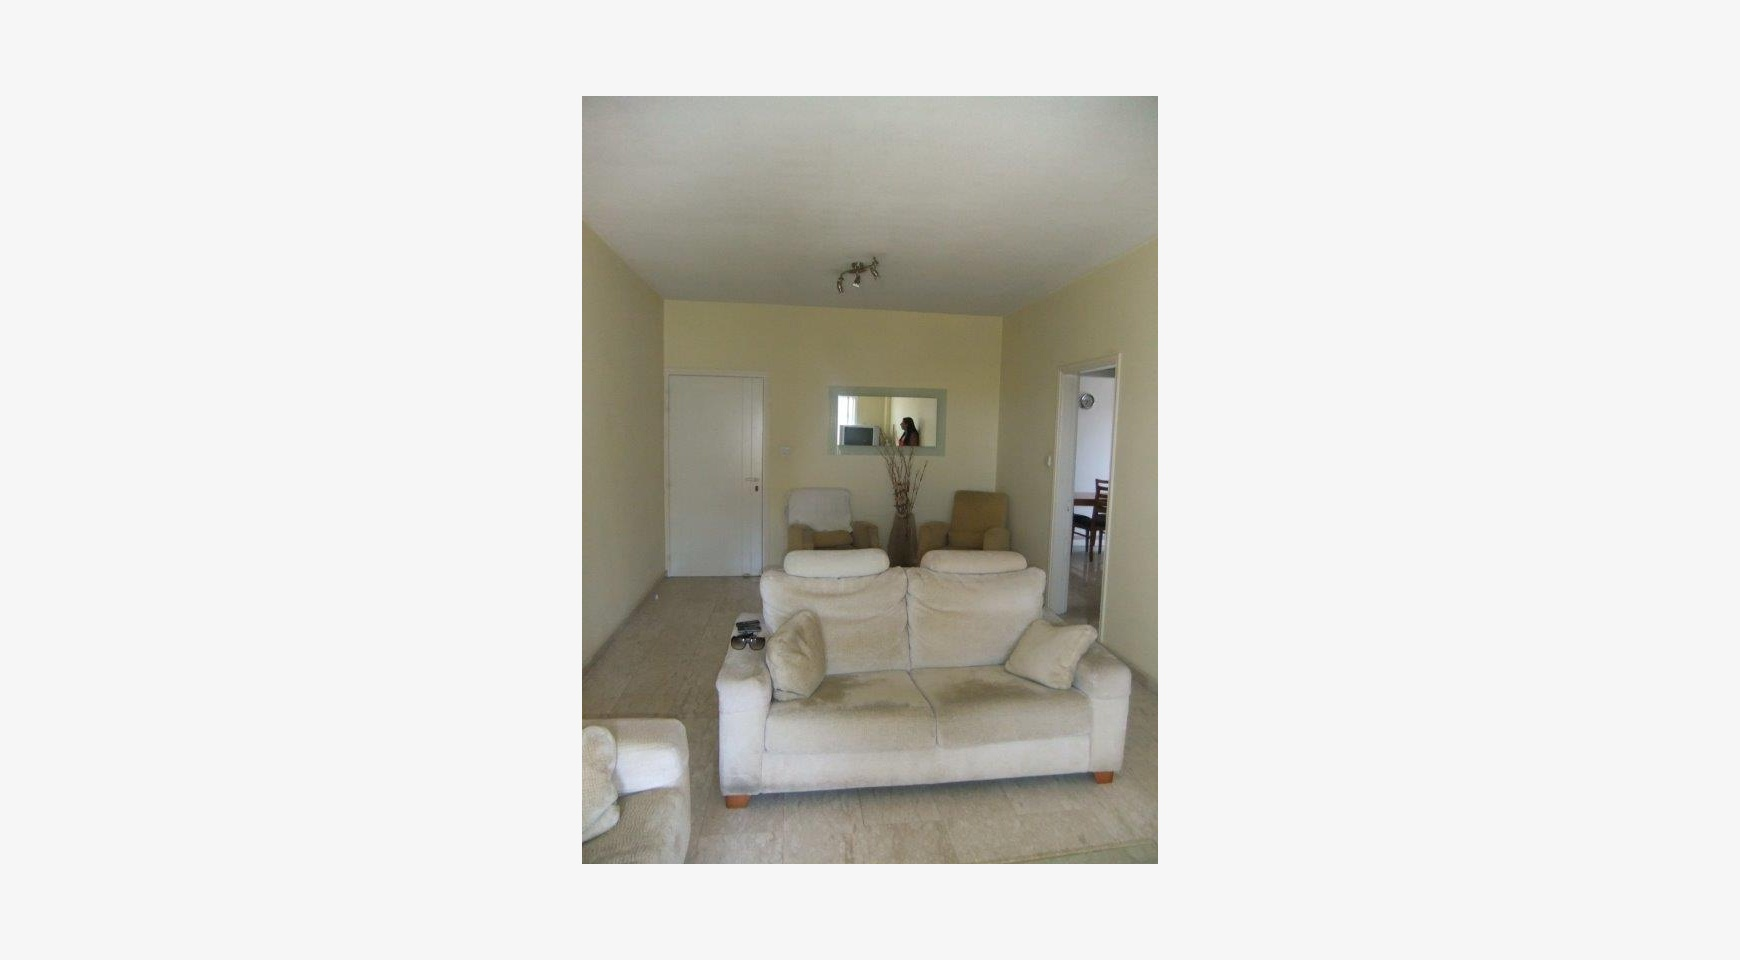 2 Bedroom Apartment in Mesa Geitonia - 2